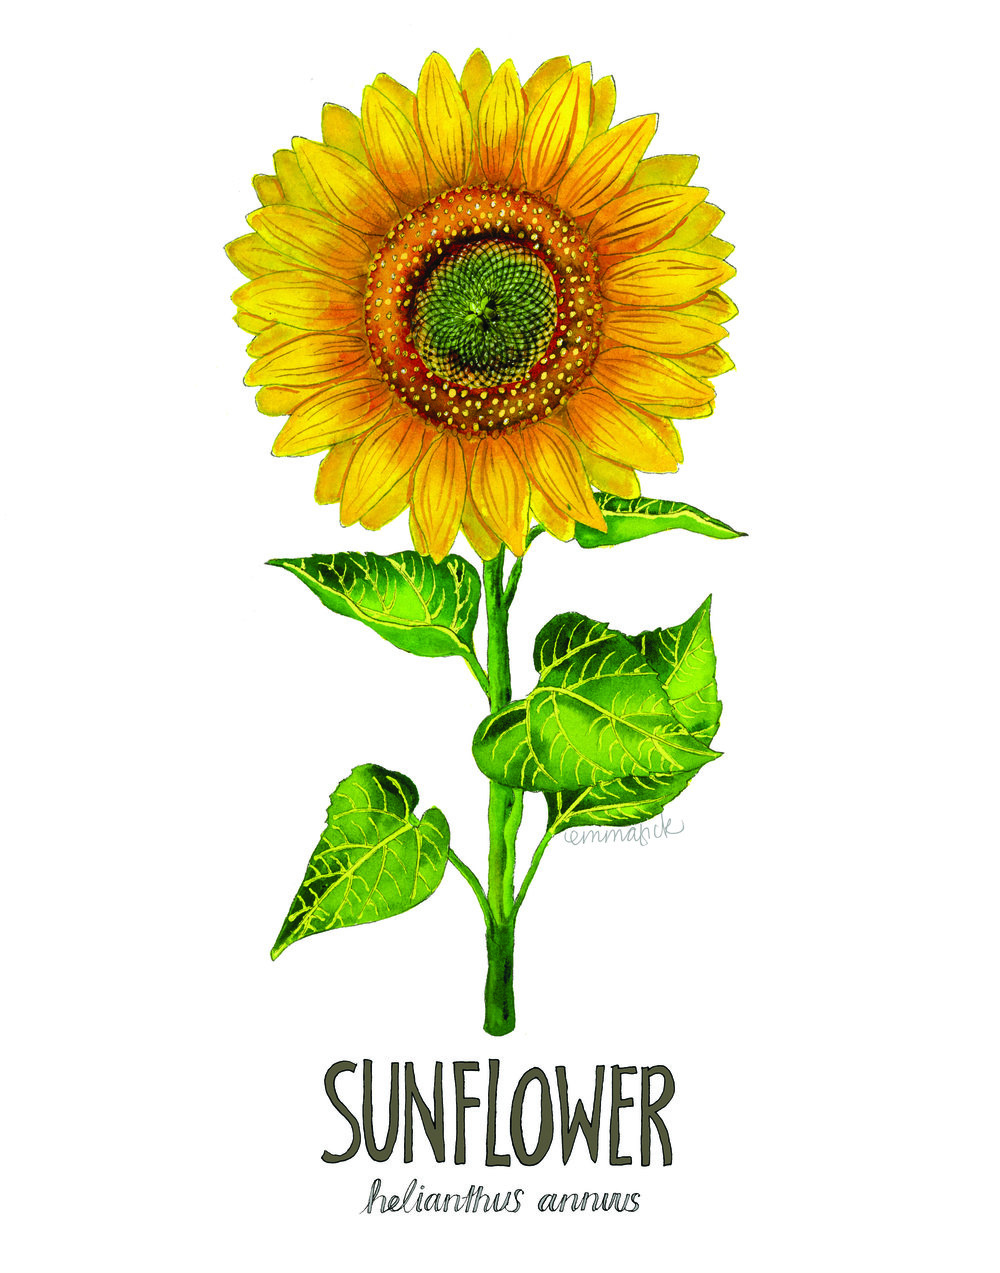 Sunflower with signature.jpg